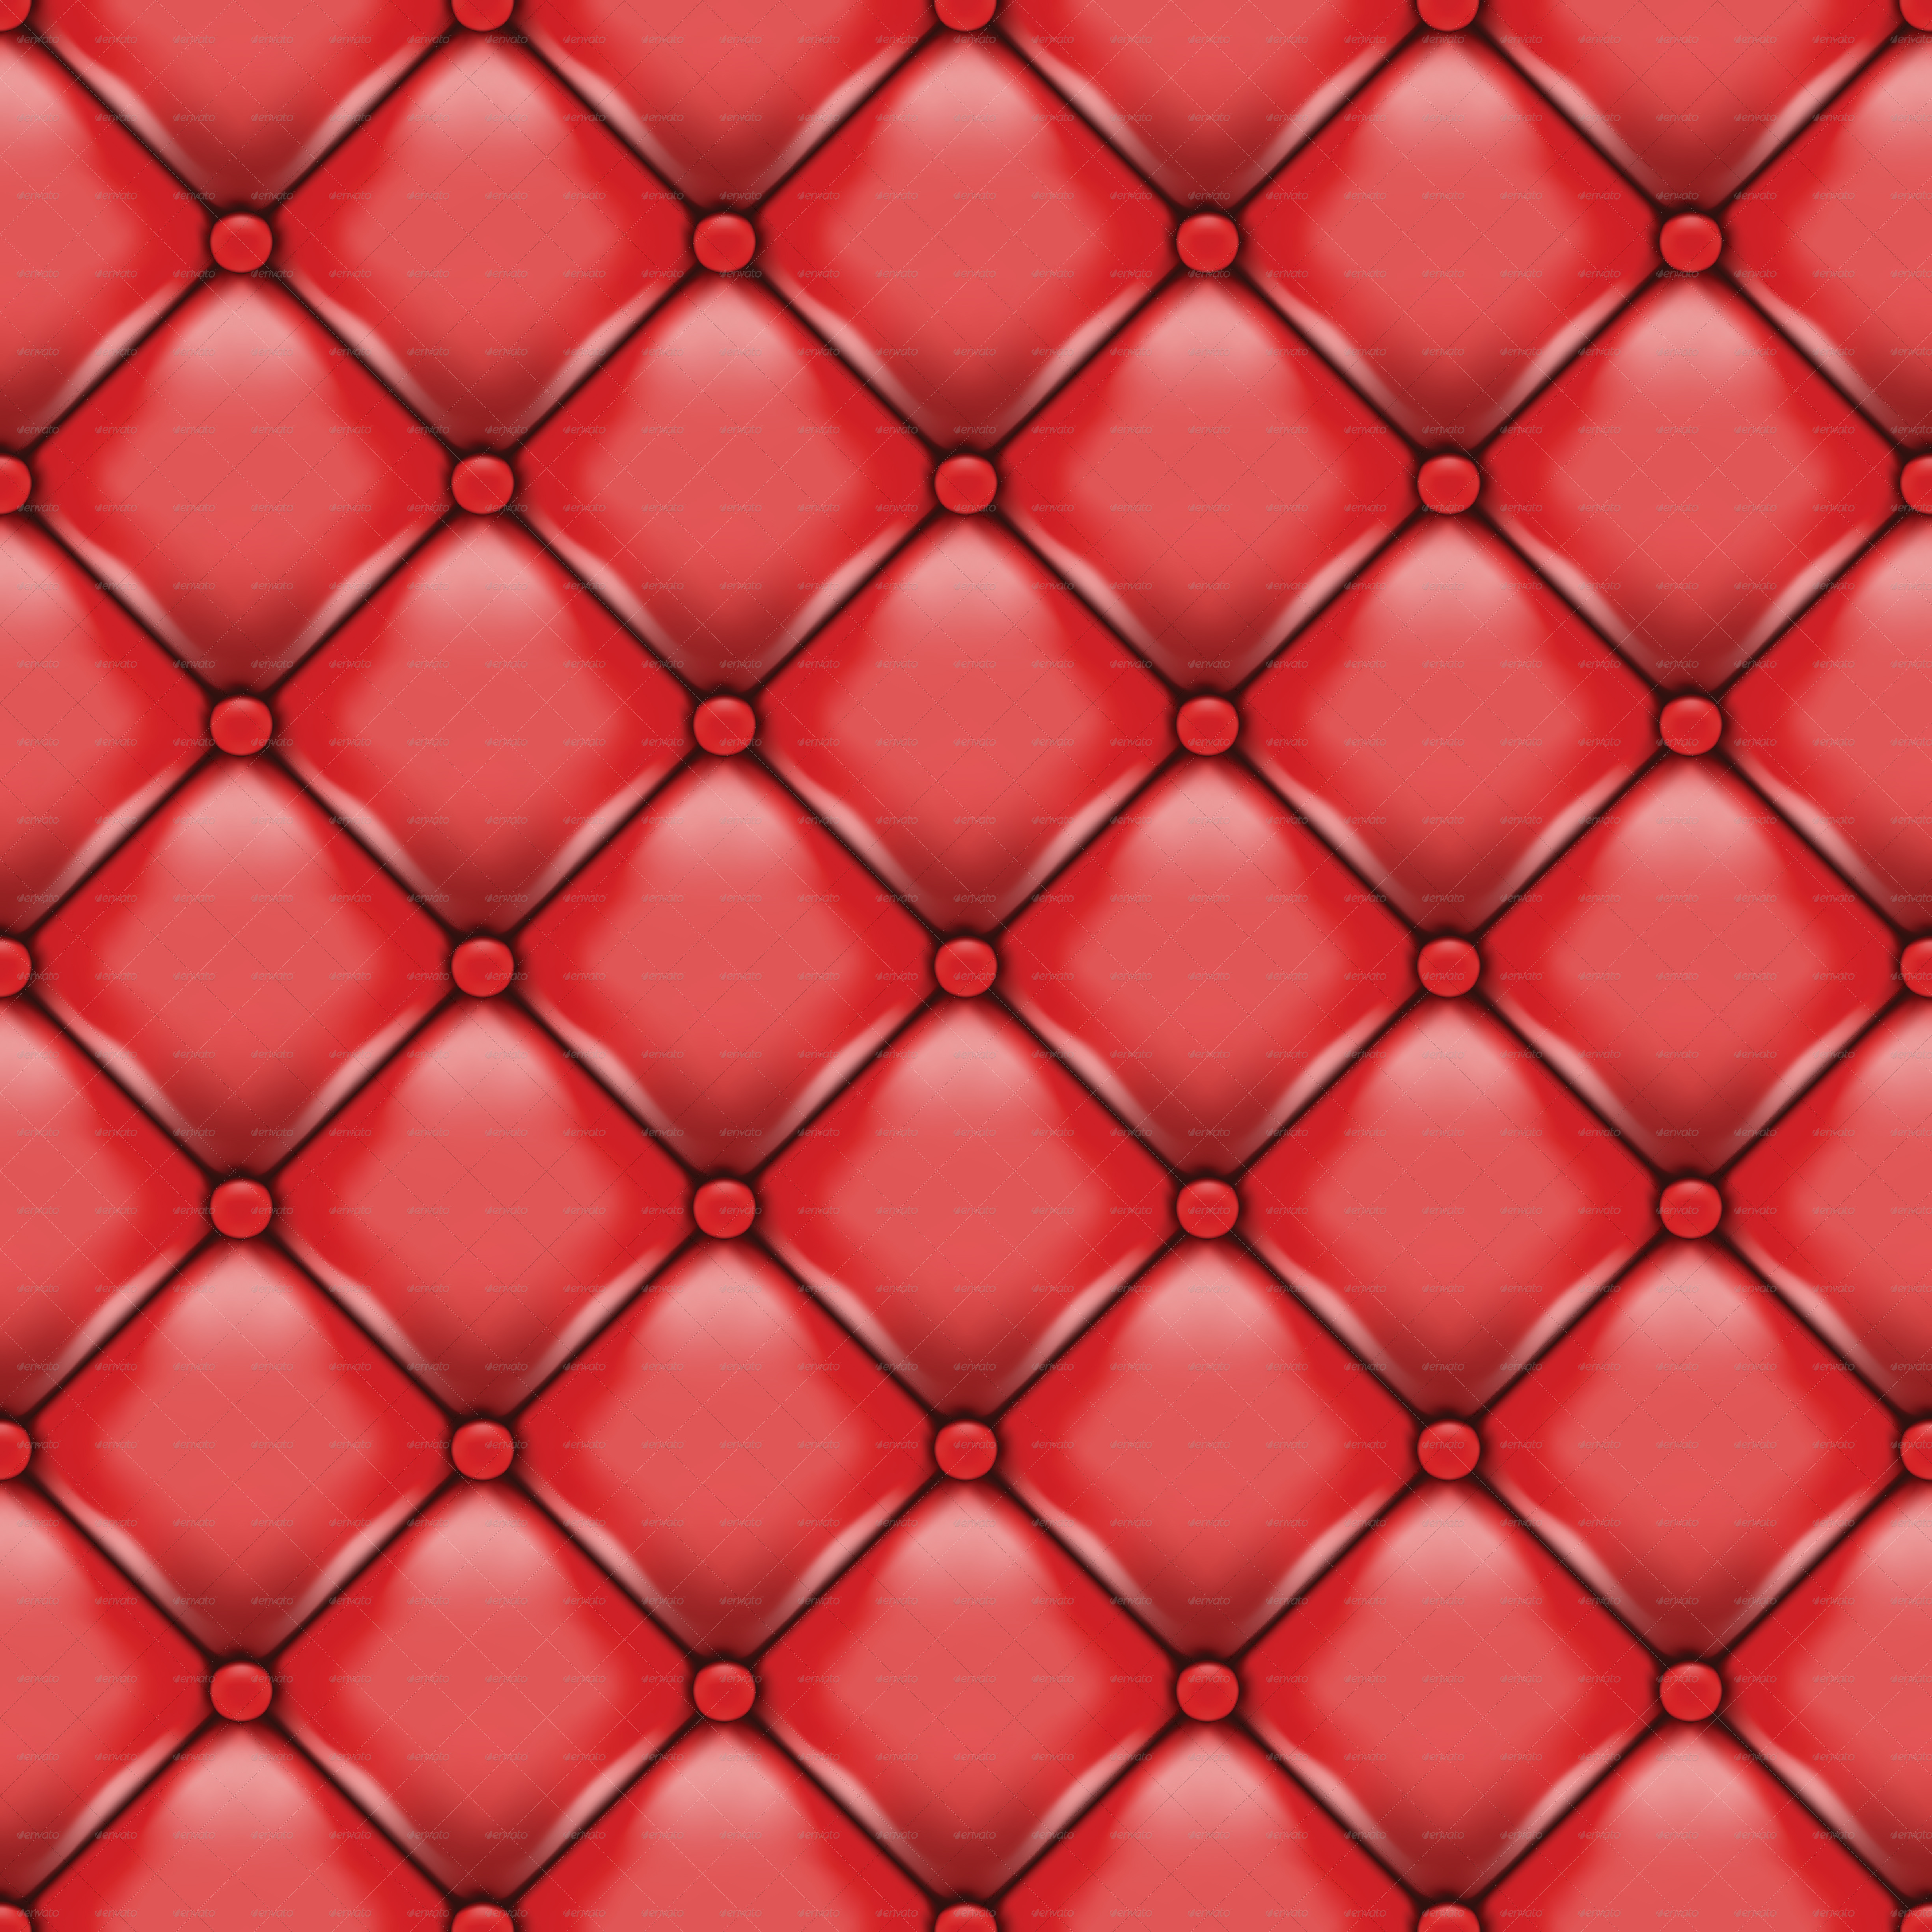 Leather Upholstery By Buriy Graphicriver